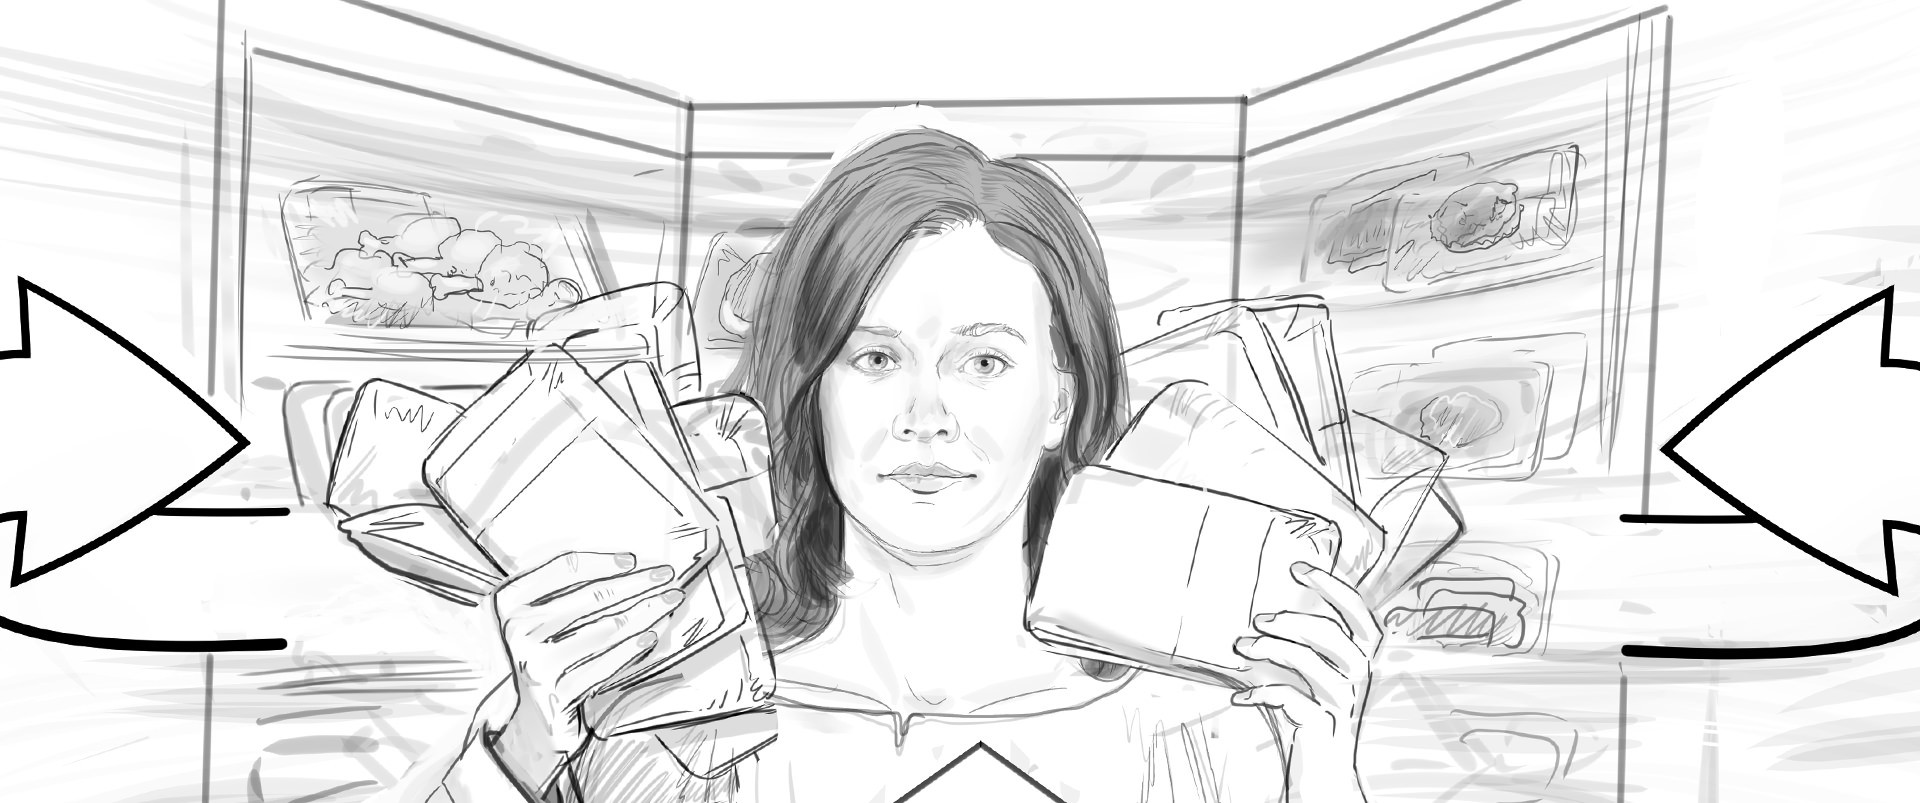 Lidl Vis TV Commercial storyboard 01